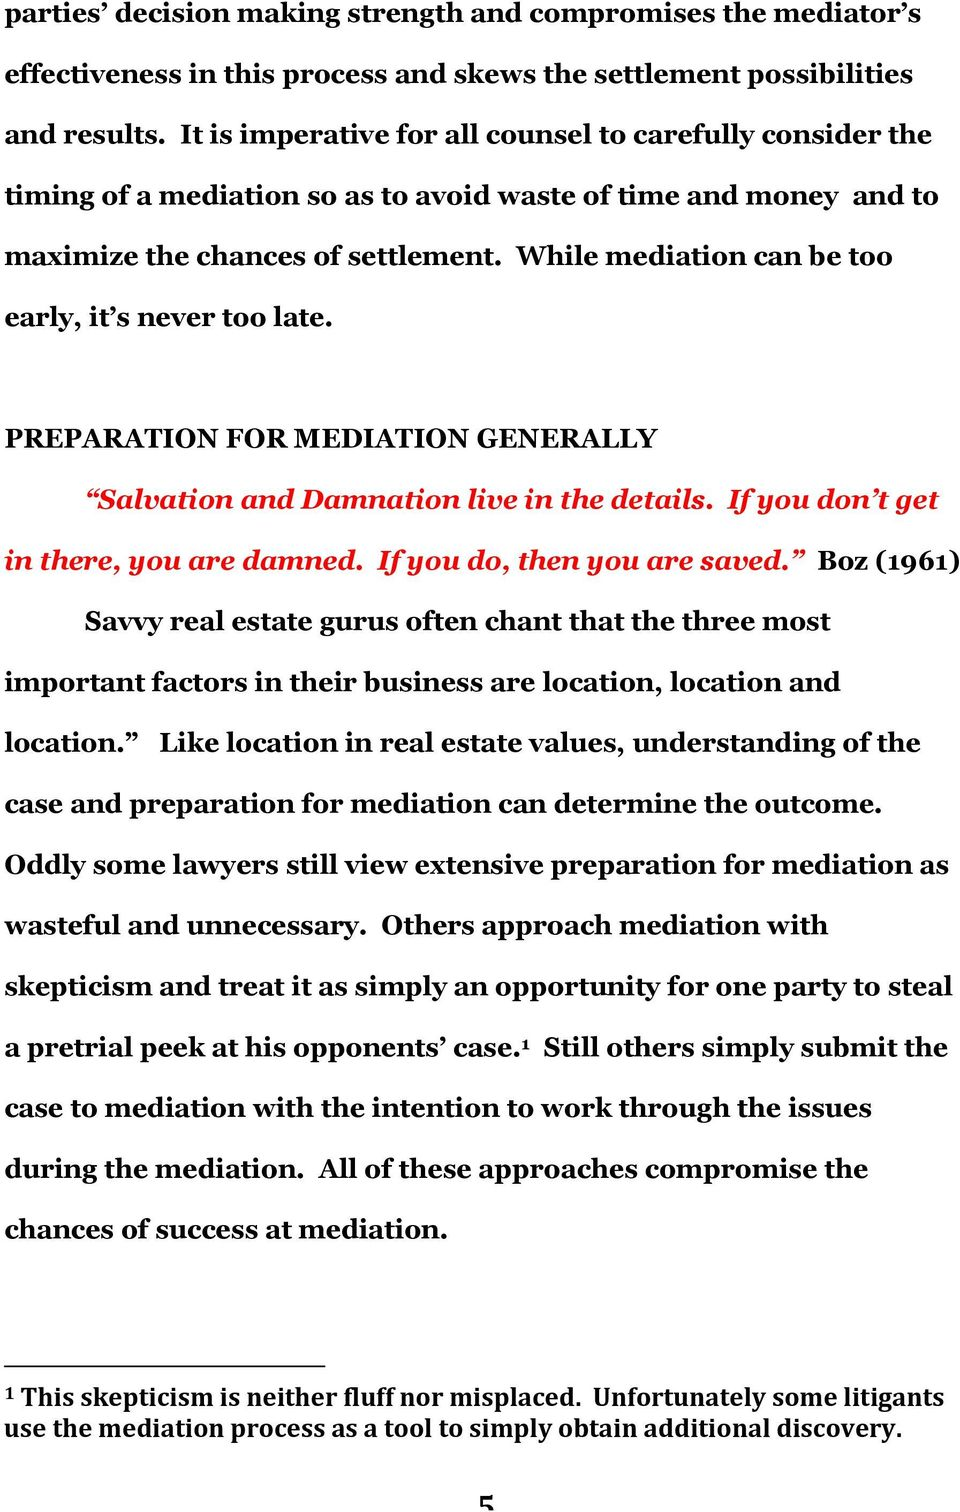 While mediation can be too early, it s never too late. PREPARATION FOR MEDIATION GENERALLY Salvation and Damnation live in the details. If you don t get in there, you are damned.